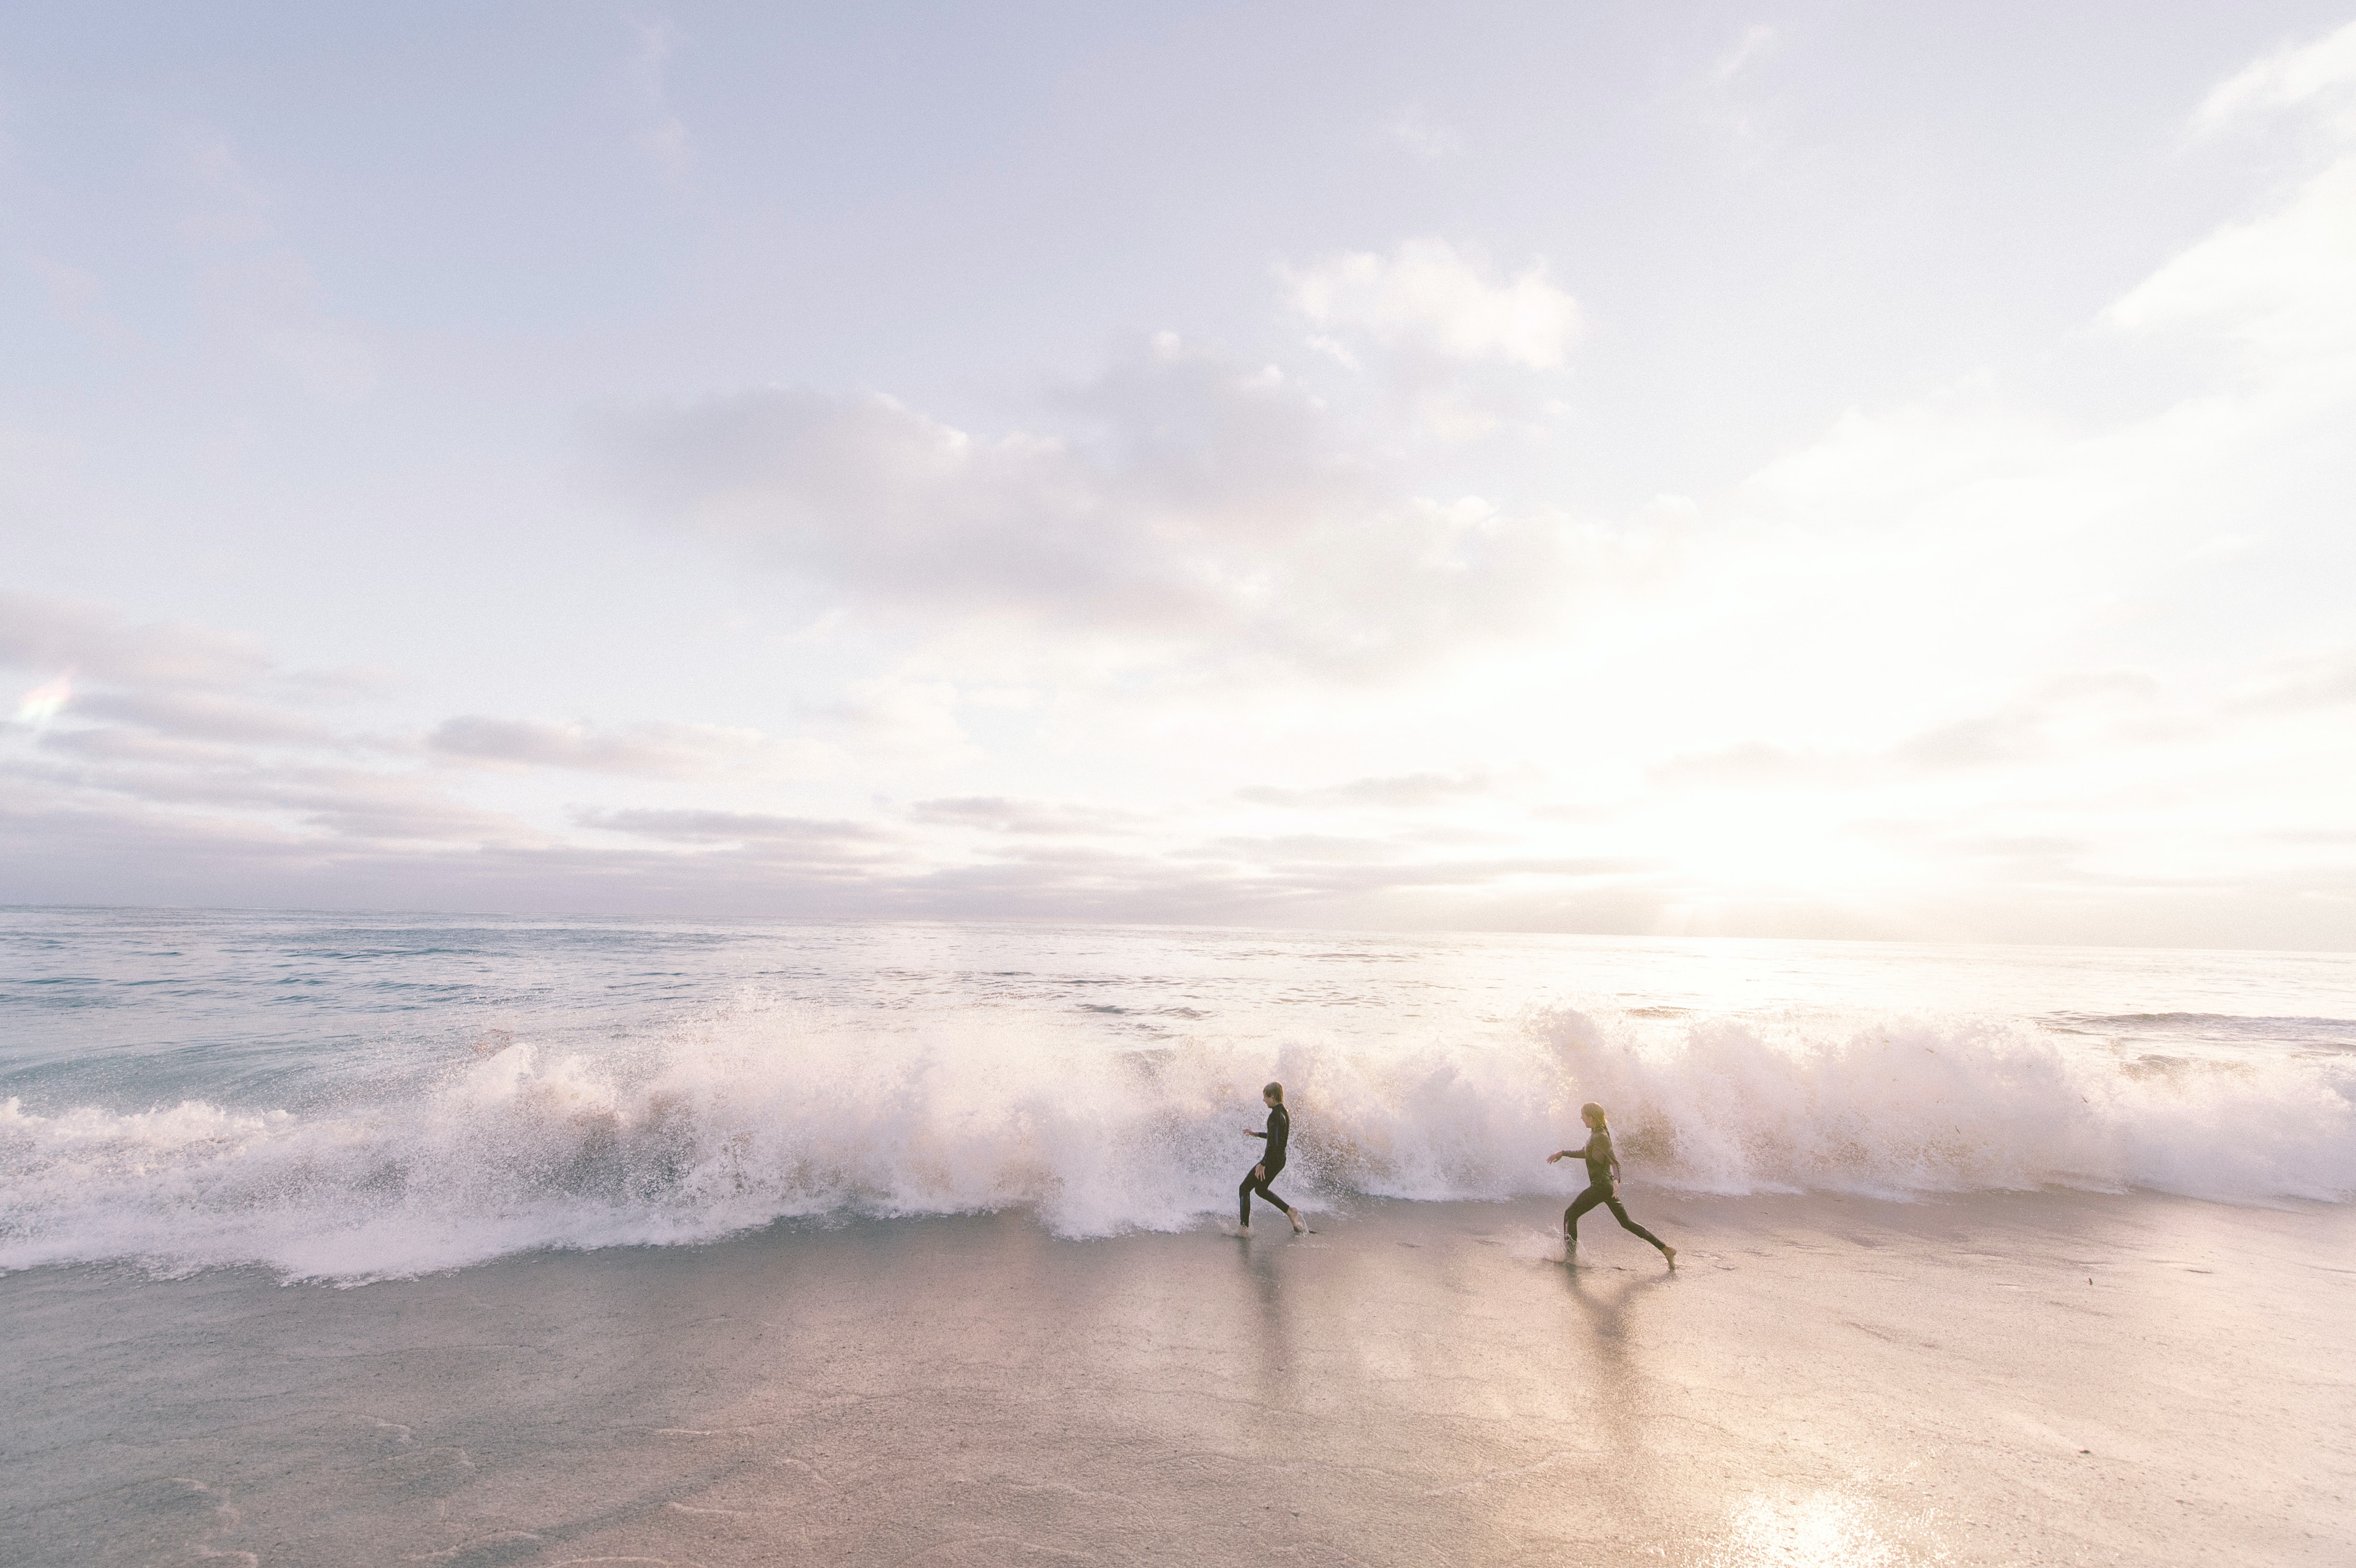 Couple running in the wave at the sand beach in La Jolla